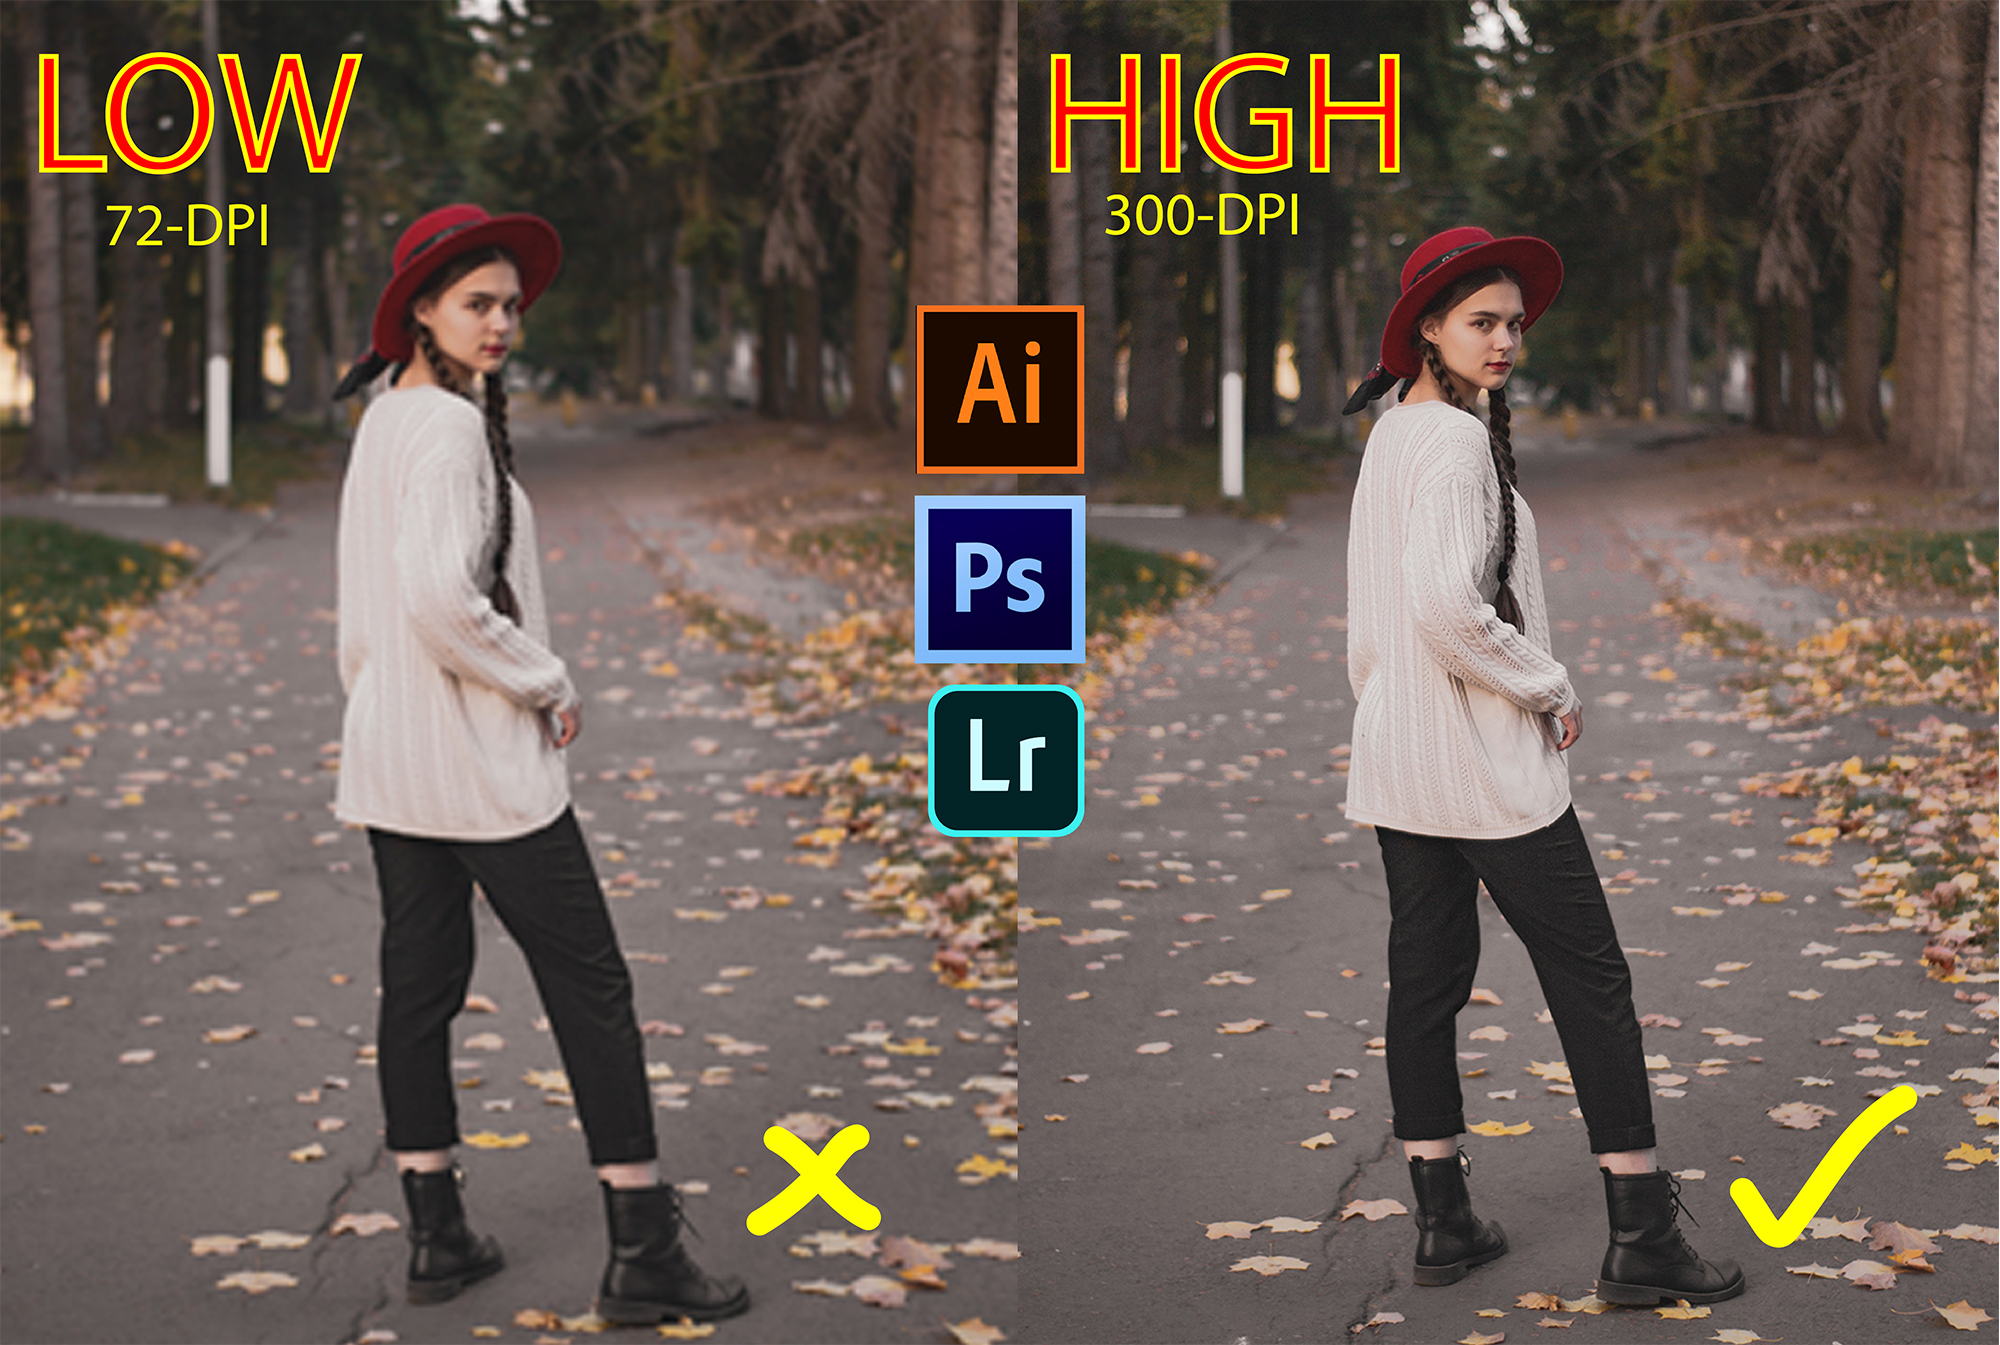 Convert low resolution image to high resolution